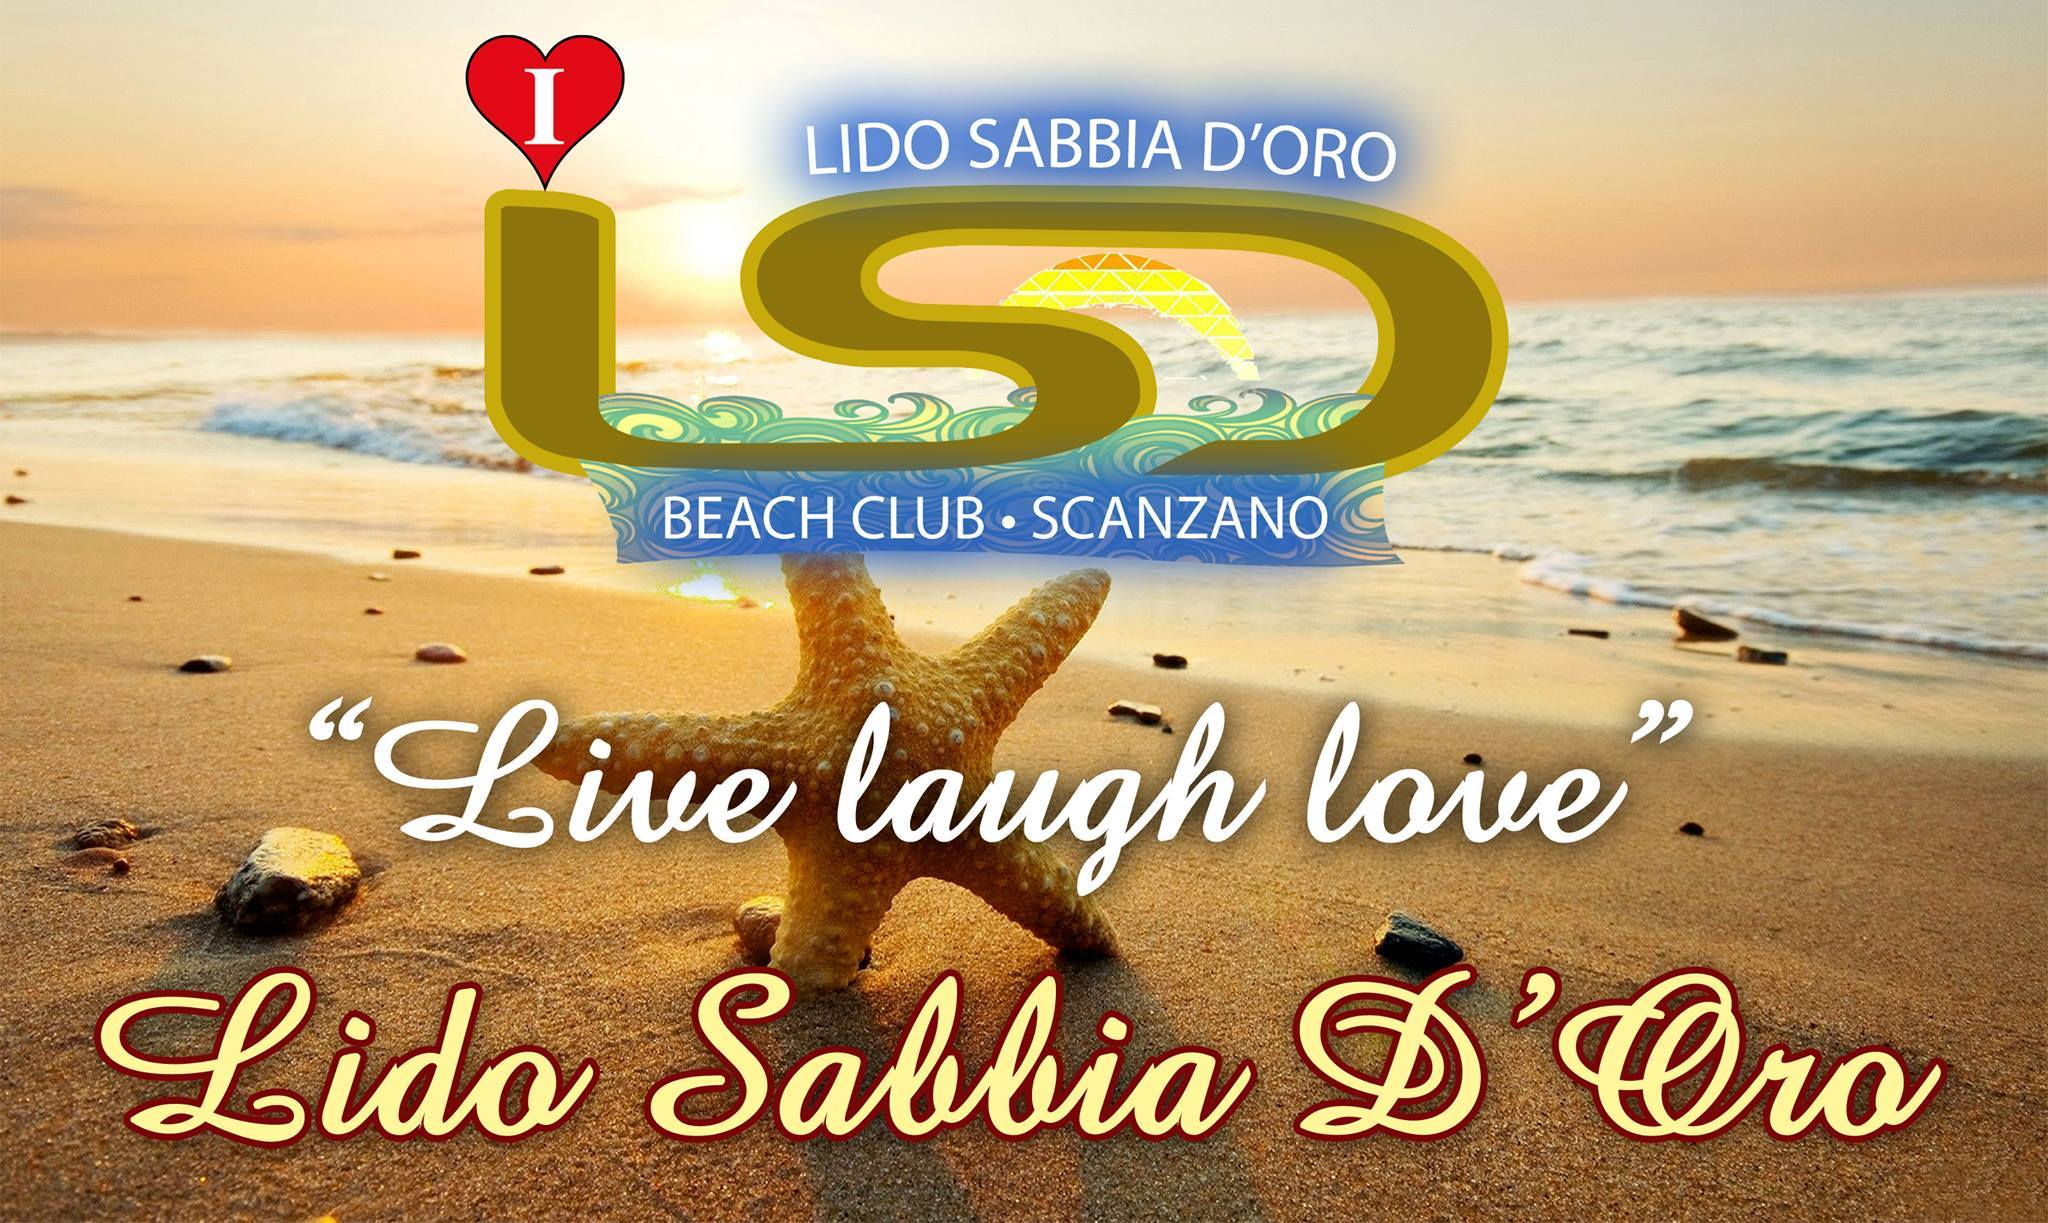 I LOVE LIDO SABBIA D'ORO - BEACH CLUB